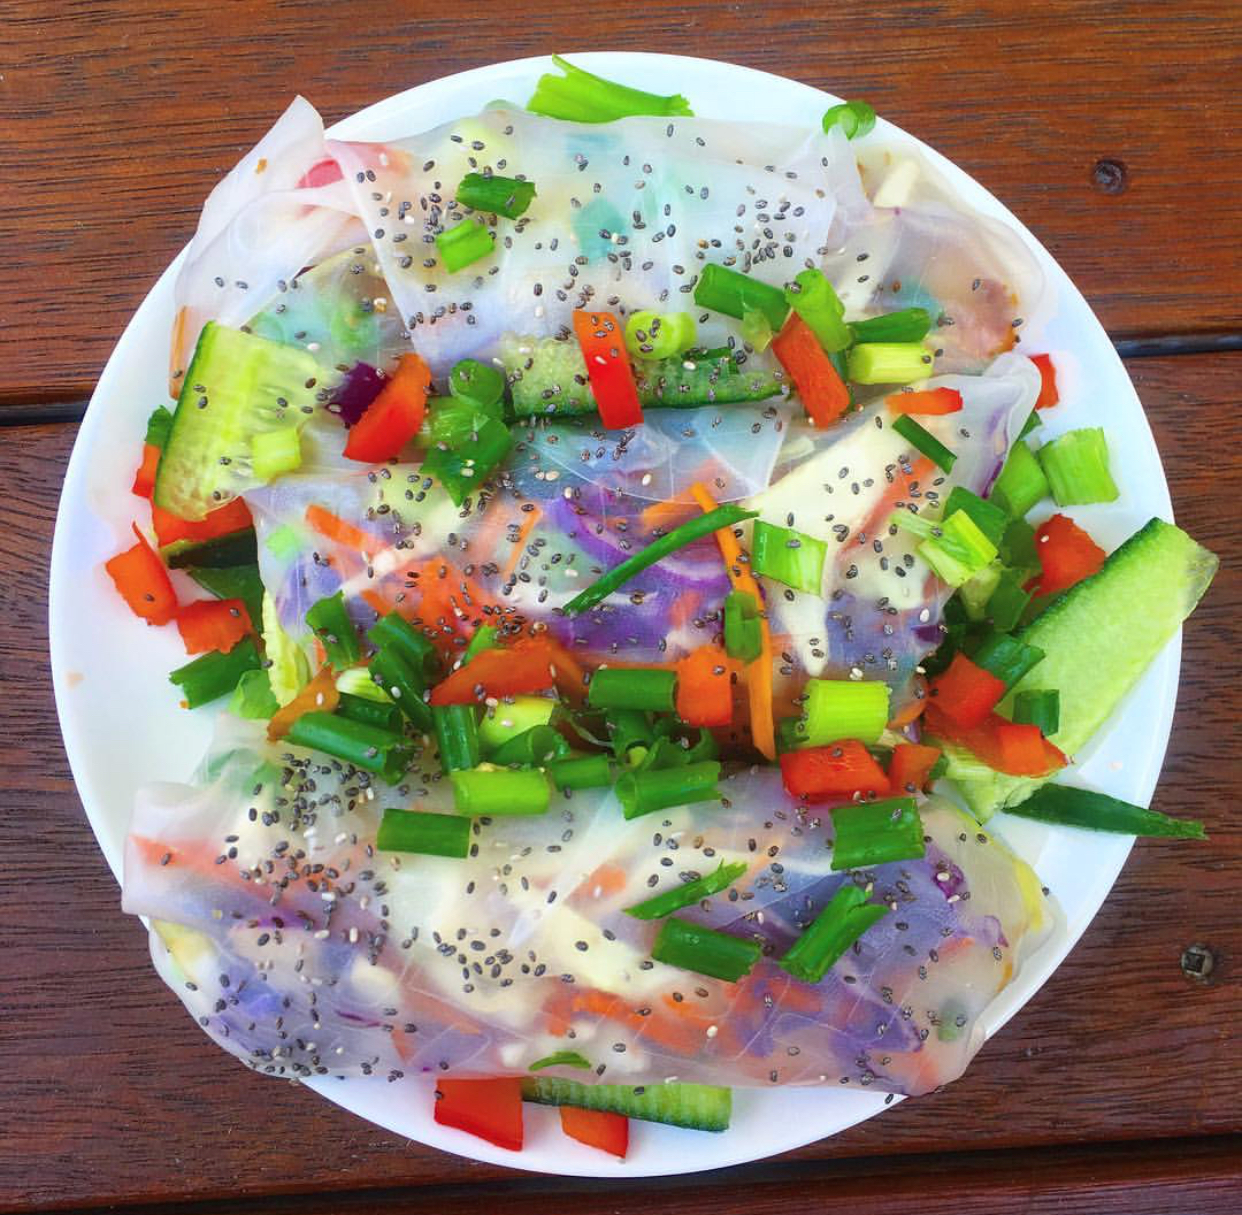 Now when I cook, I like to get colourful and creative! Here are my raw rice paper rolls.